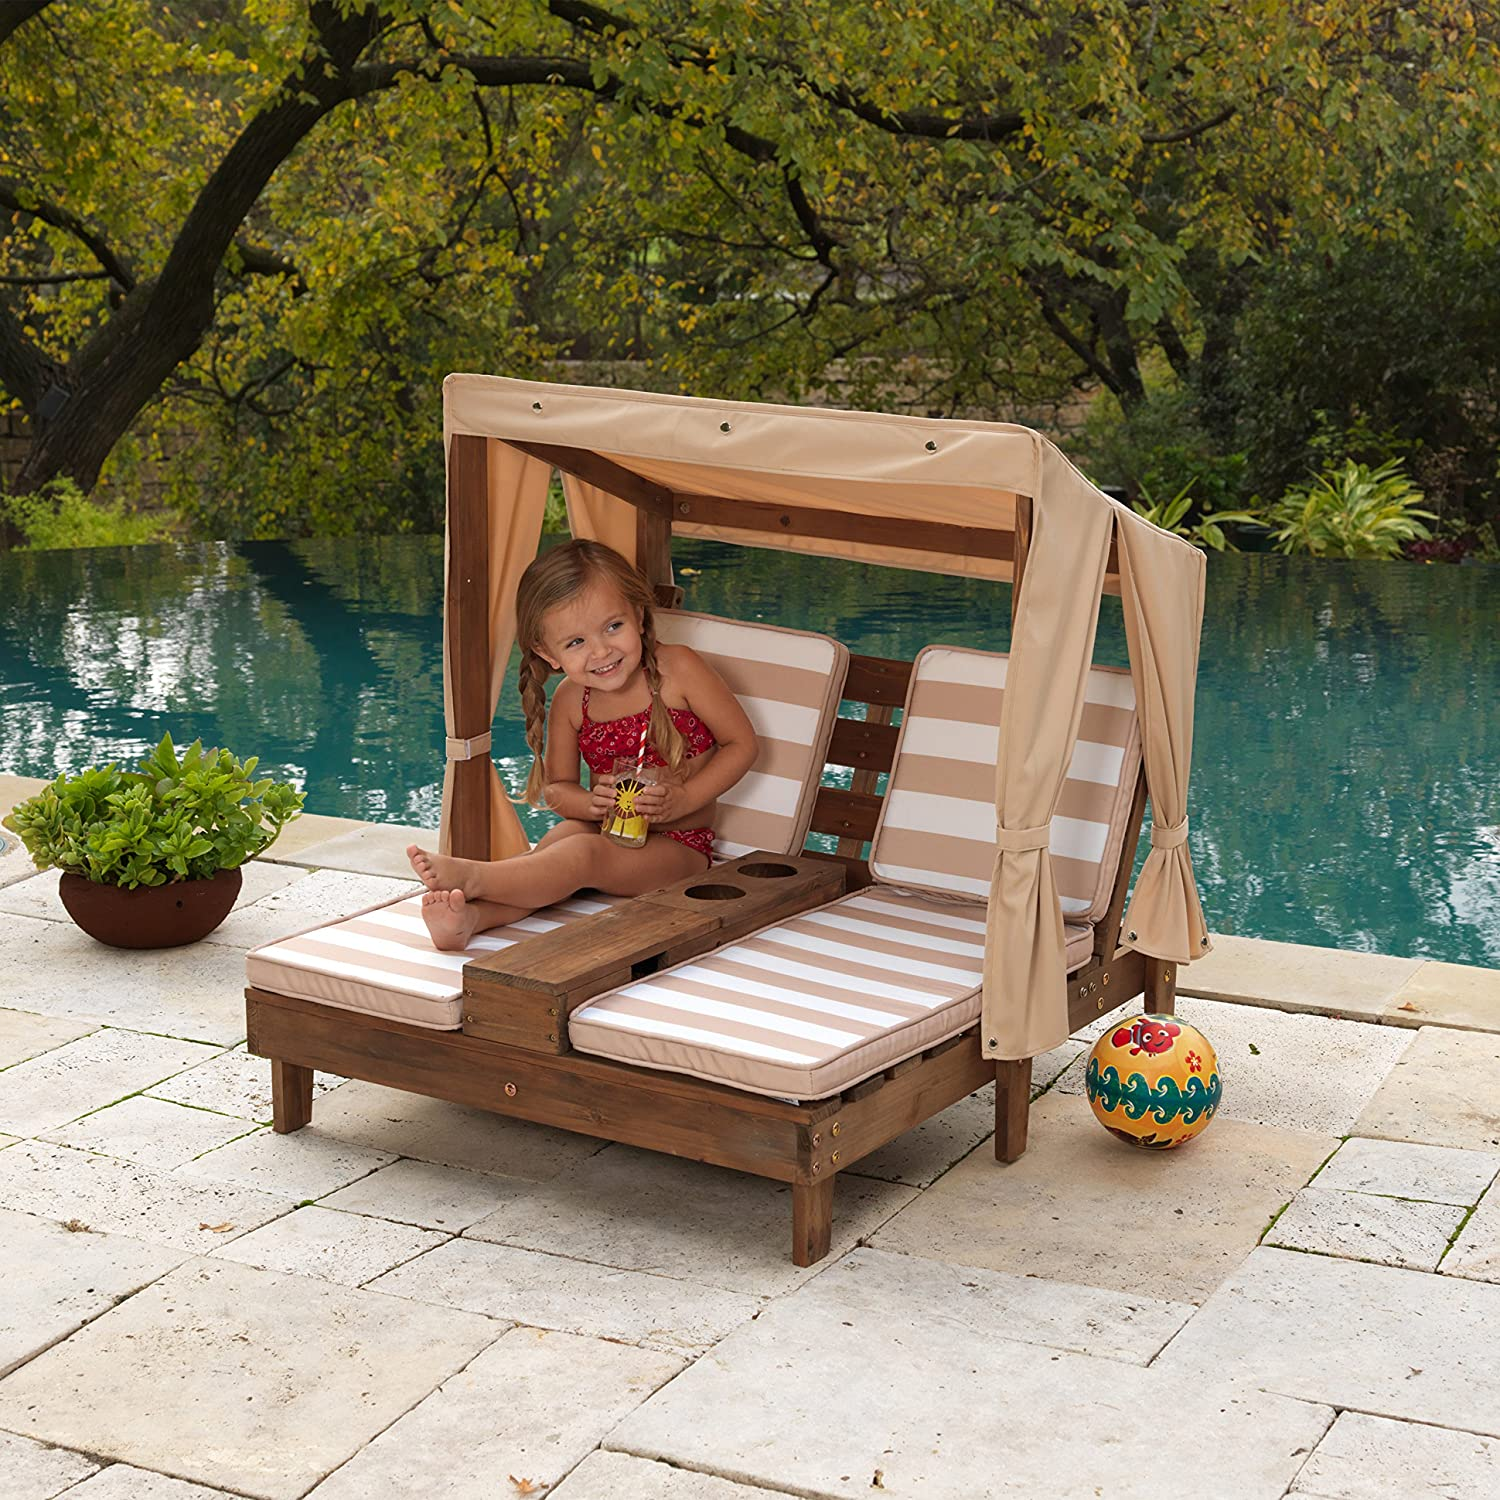 KidKraft Double Chaise Lounge with Cup Holders Just $93.08!